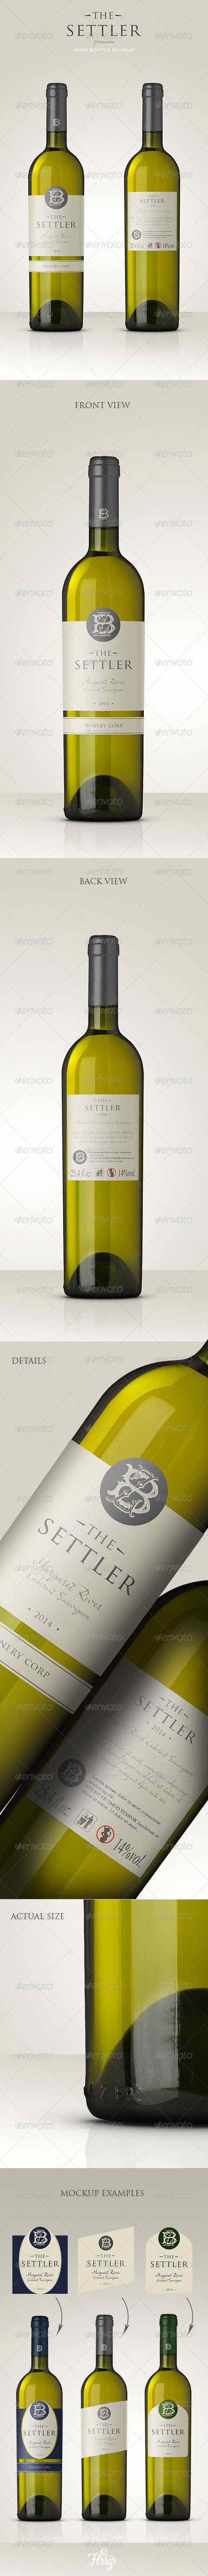 GraphicRiver Premium White Wine Mockup 6747948